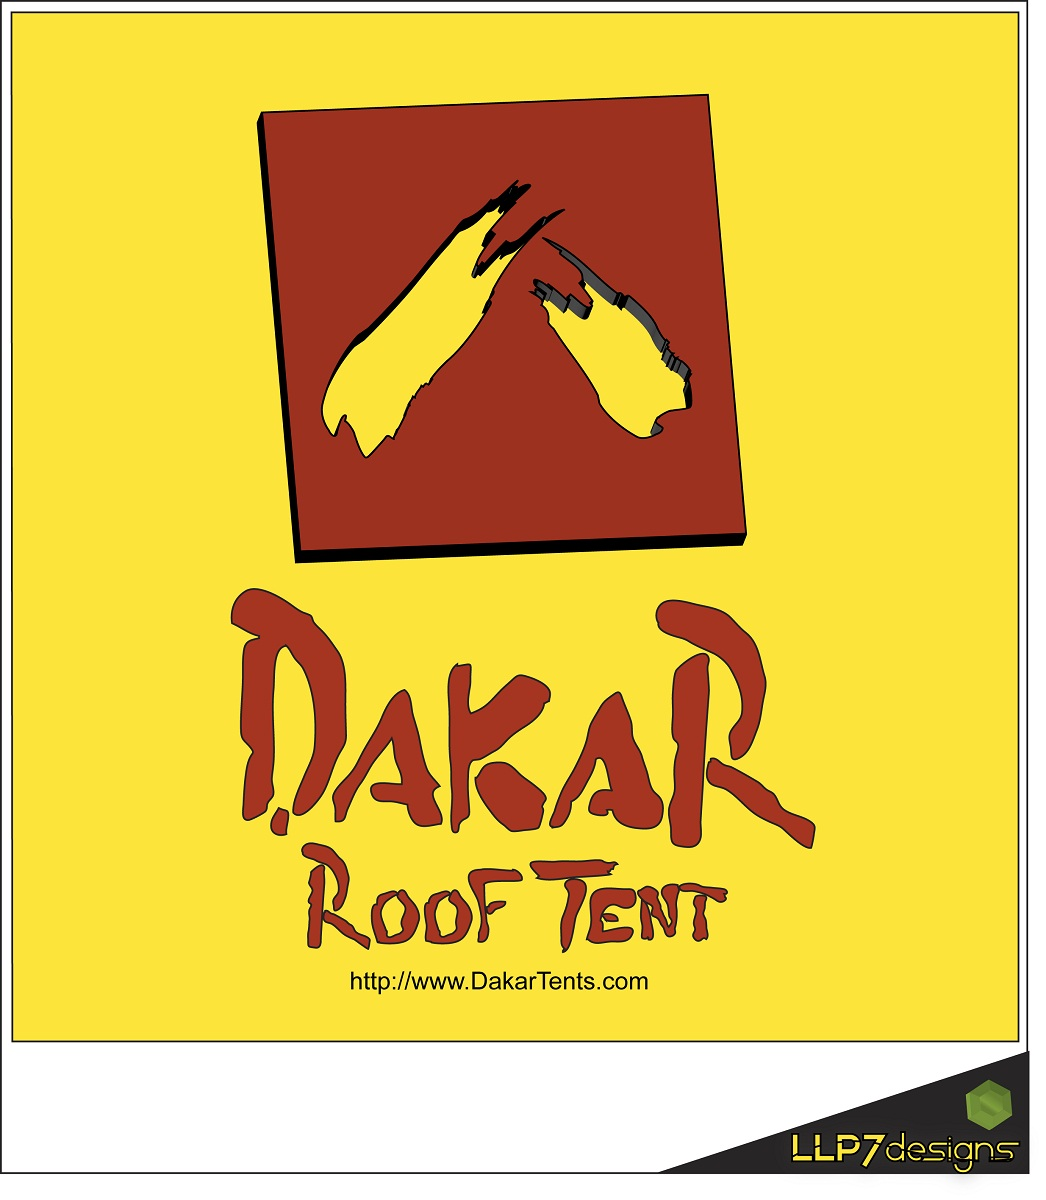 Logo Design by LLP7 - Entry No. 55 in the Logo Design Contest Dakar Roof Tents.